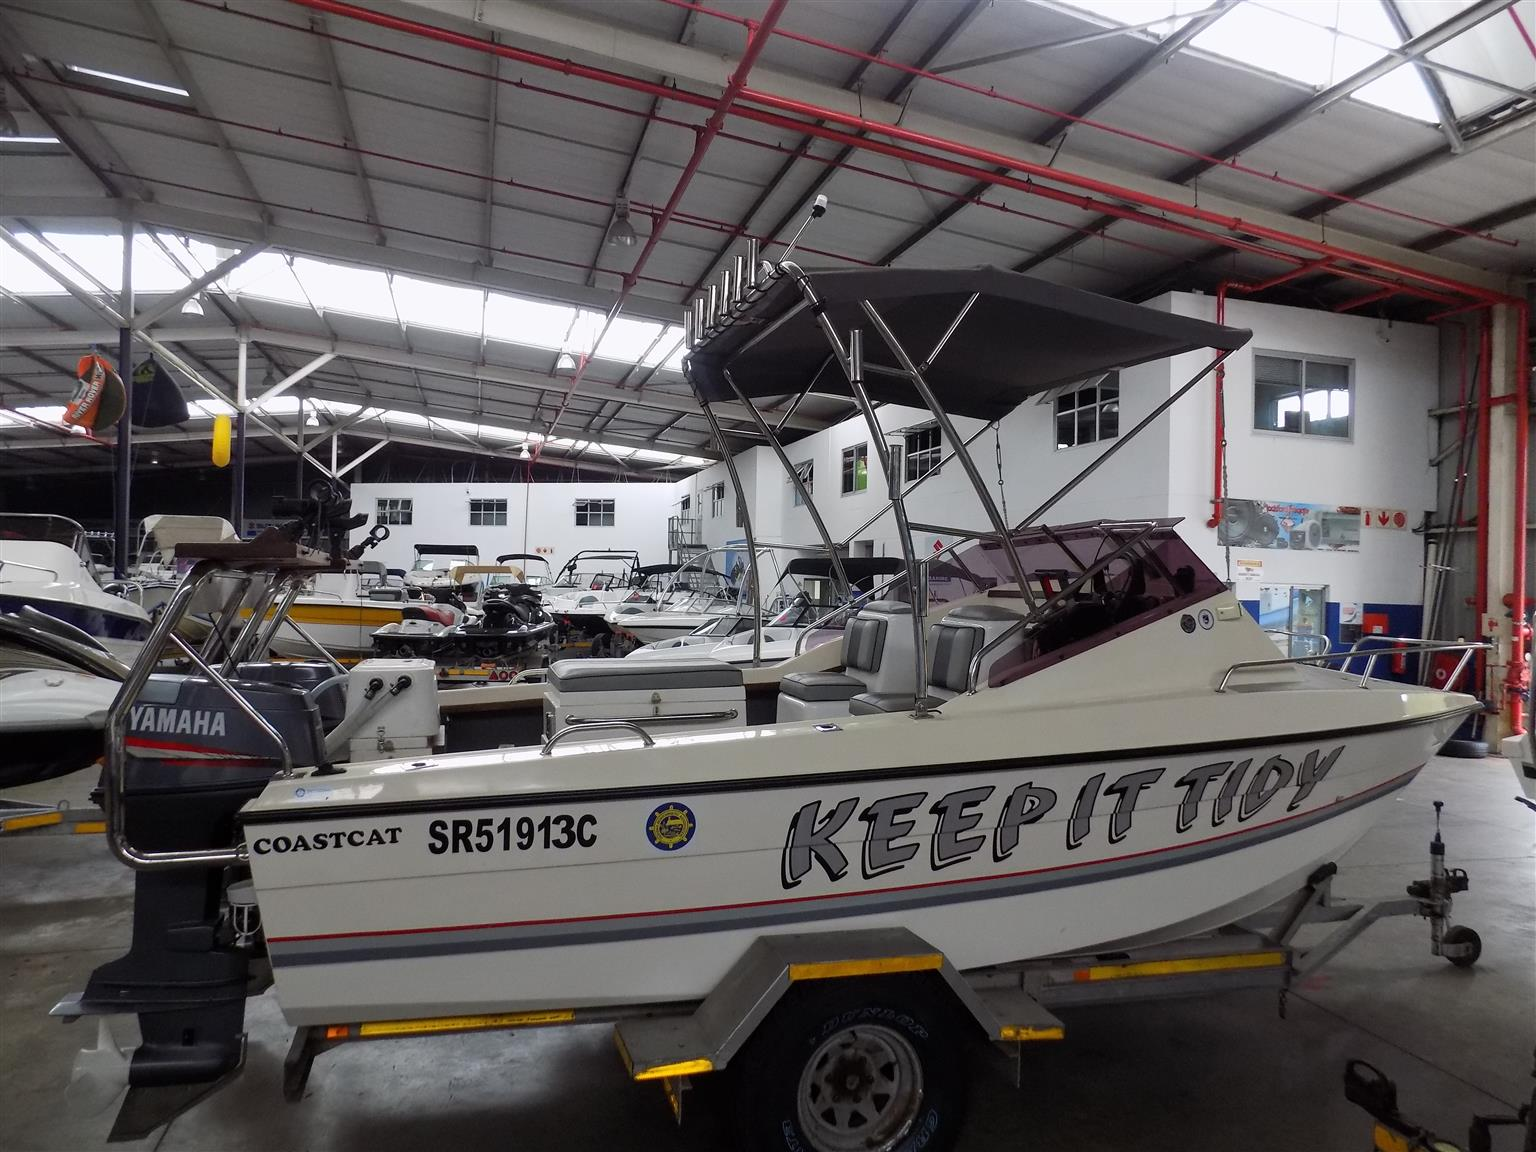 coastcat 16,6 on trailer 2 x 70 hp yamaha trims